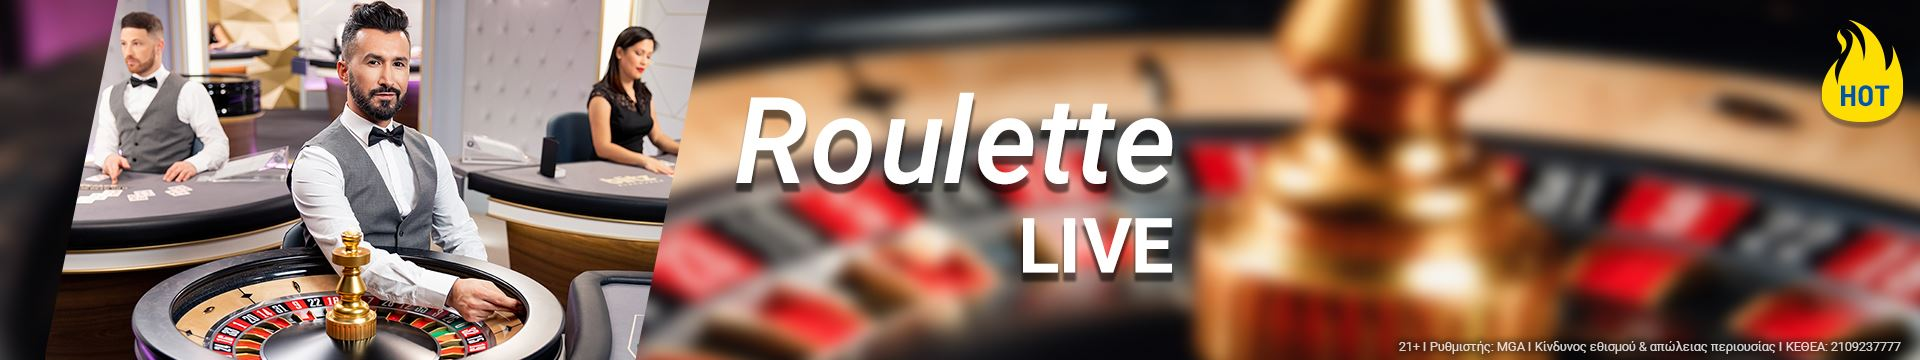 Roullete_Silver_Netent